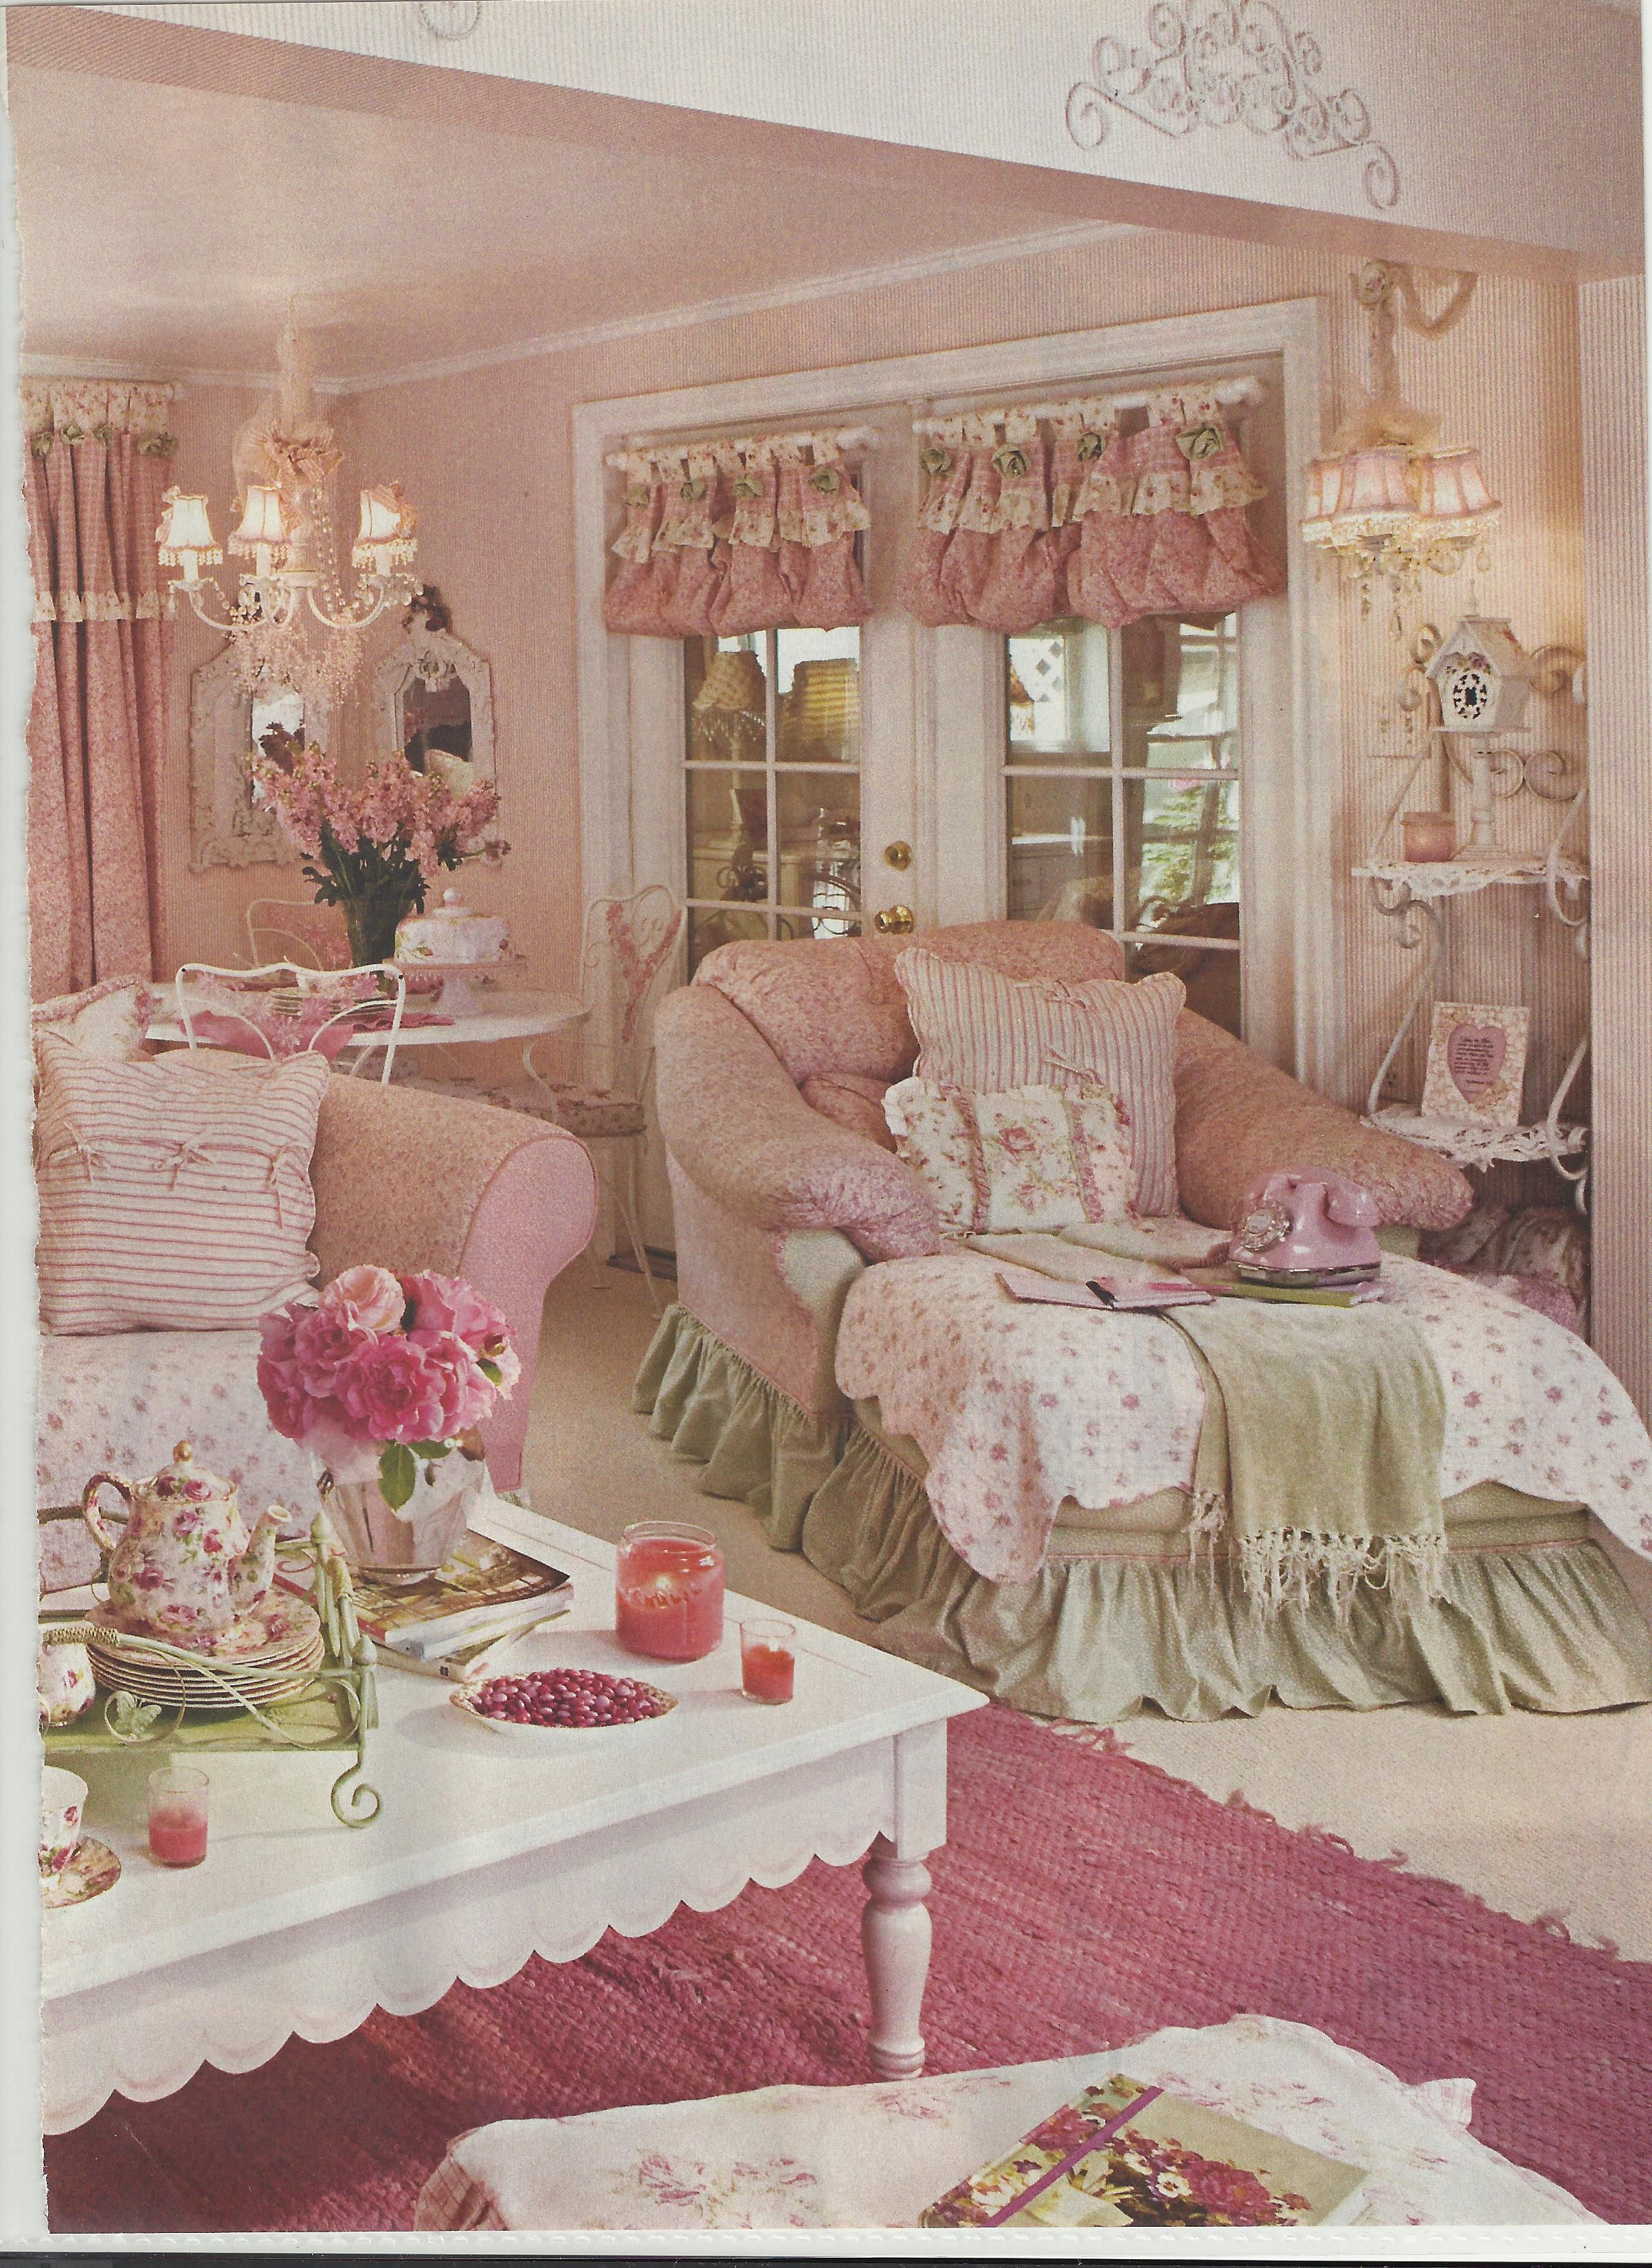 shabby chic decor so comfy looking cozy and inviting i really love it decorating. Black Bedroom Furniture Sets. Home Design Ideas